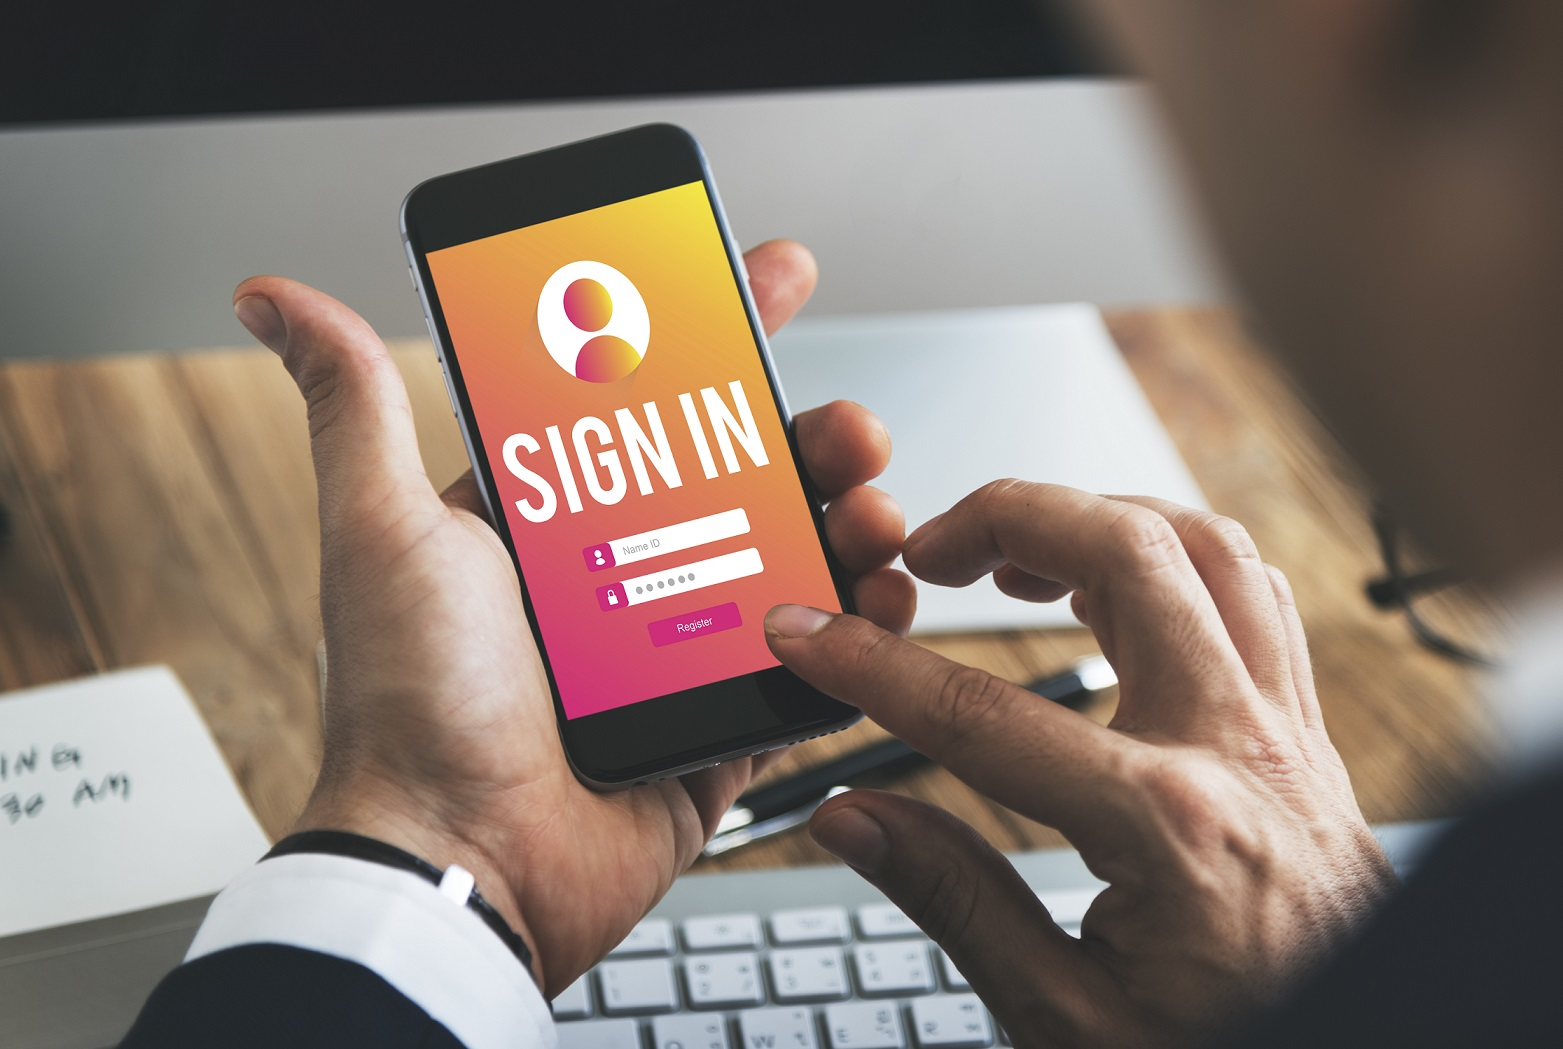 What Benefits Does a Wi-Fi Captive Portal Give Guests